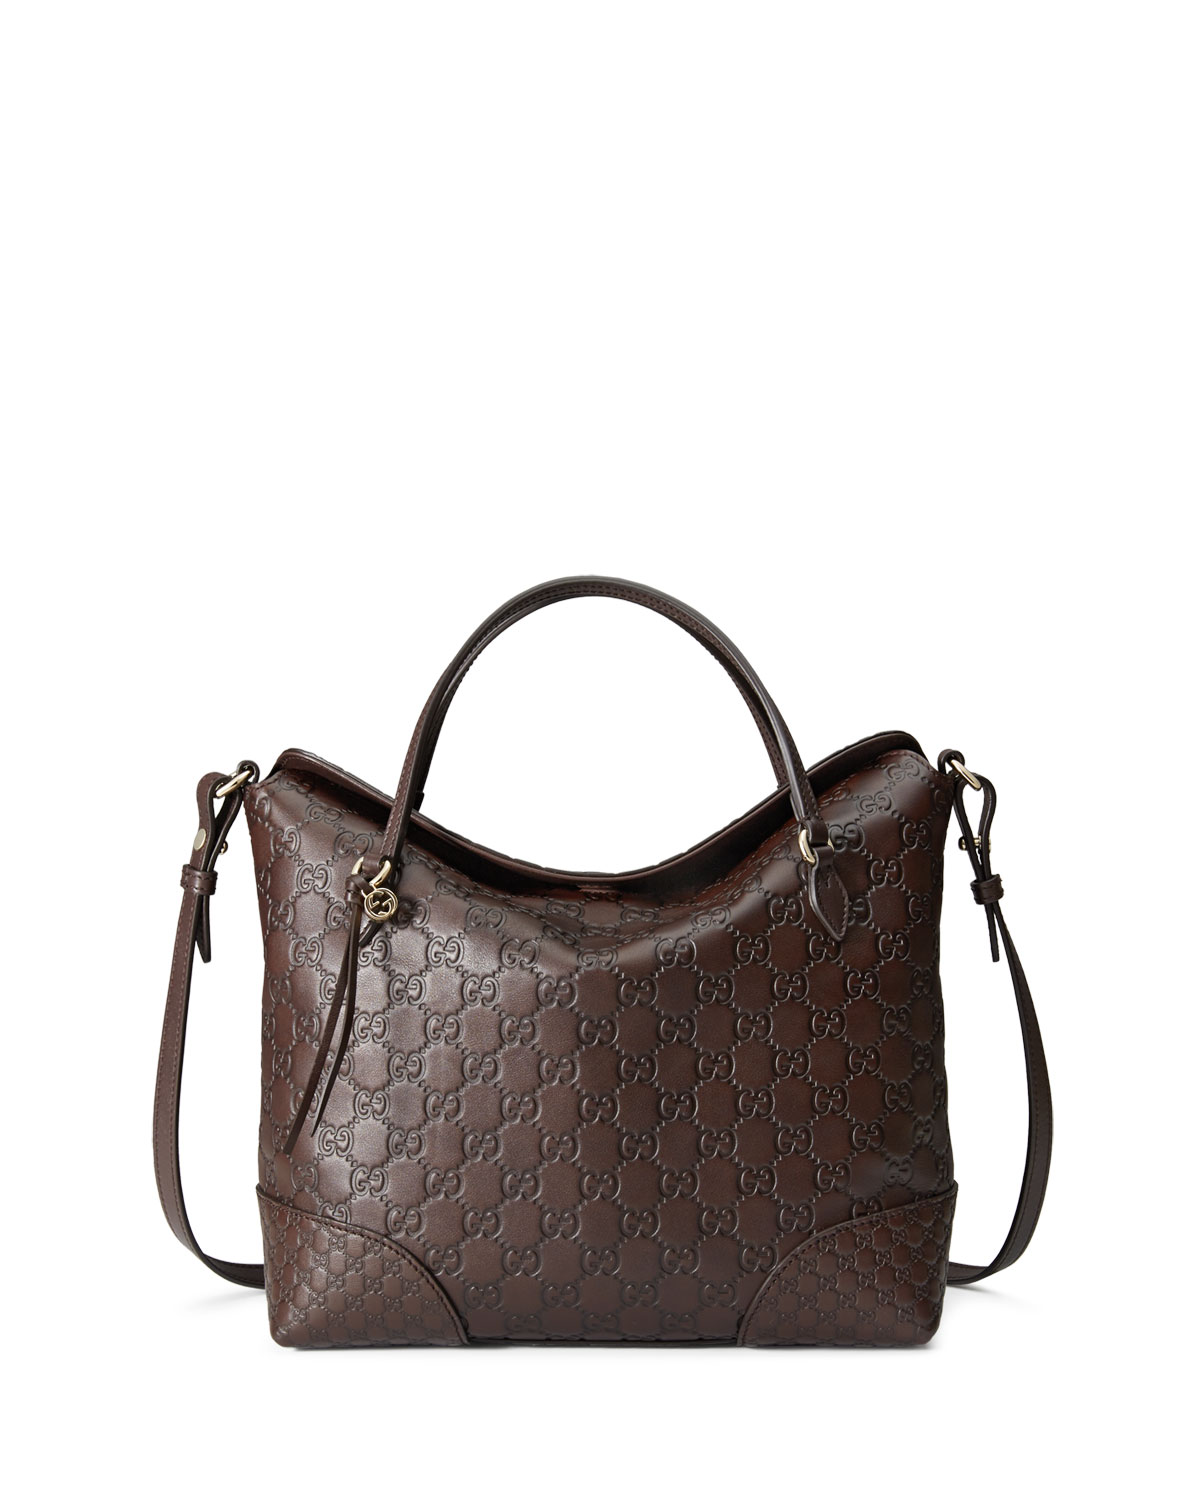 c802fb1d437078 Gucci Bree Guccissima Leather Top Handle Bag, Chocolate | Neiman Marcus